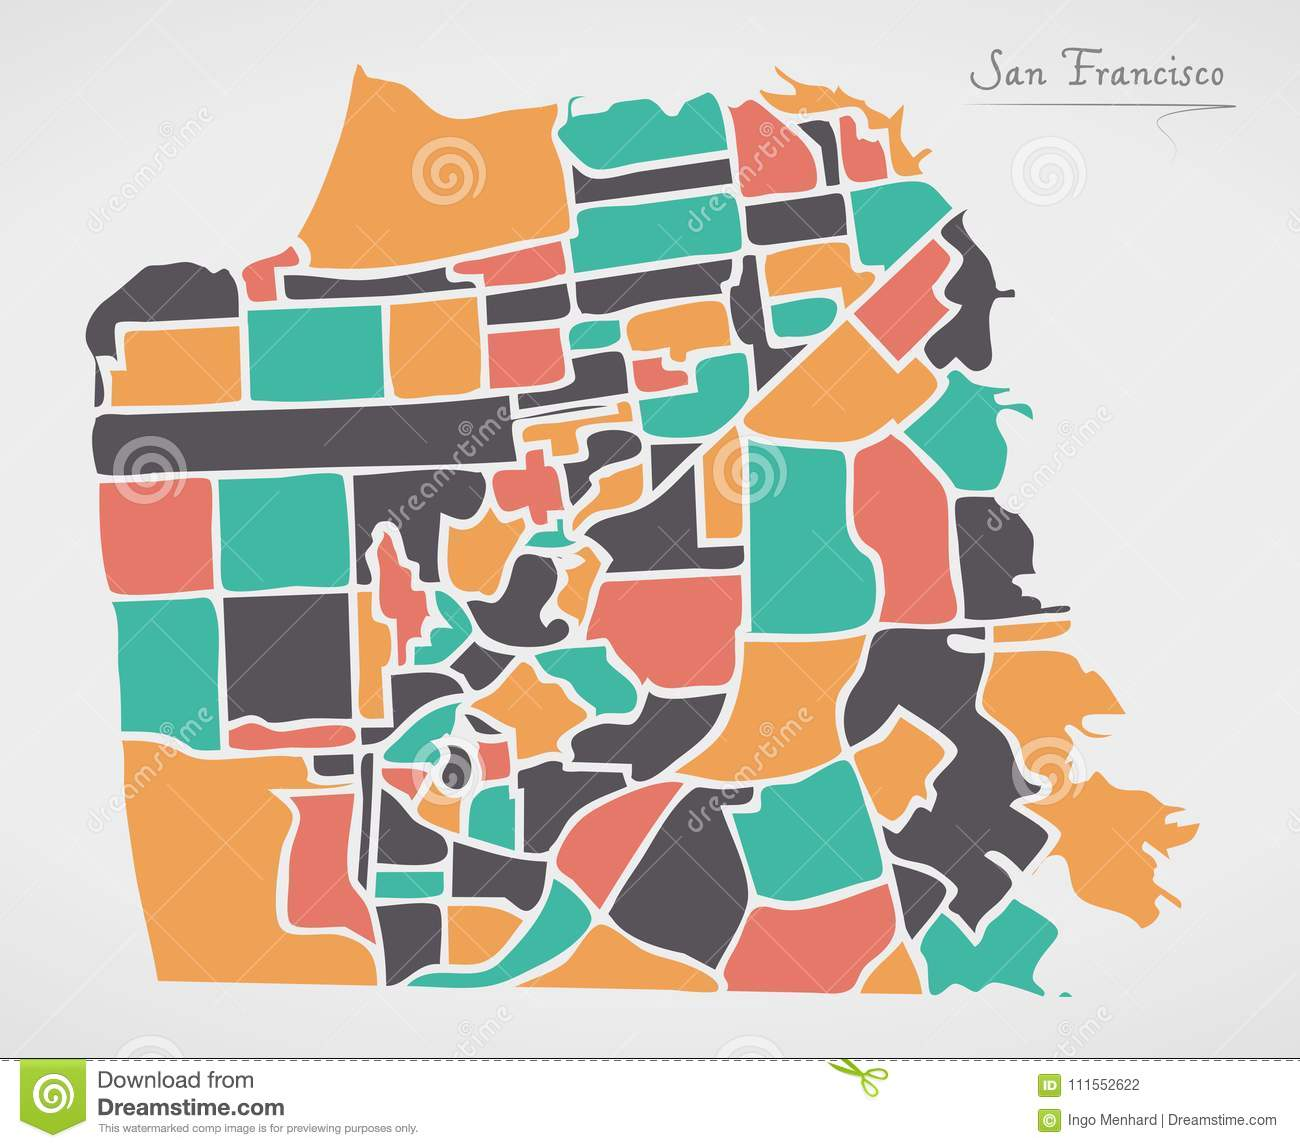 San Francisco Map With Neighborhoods And Modern Round Shapes Stock